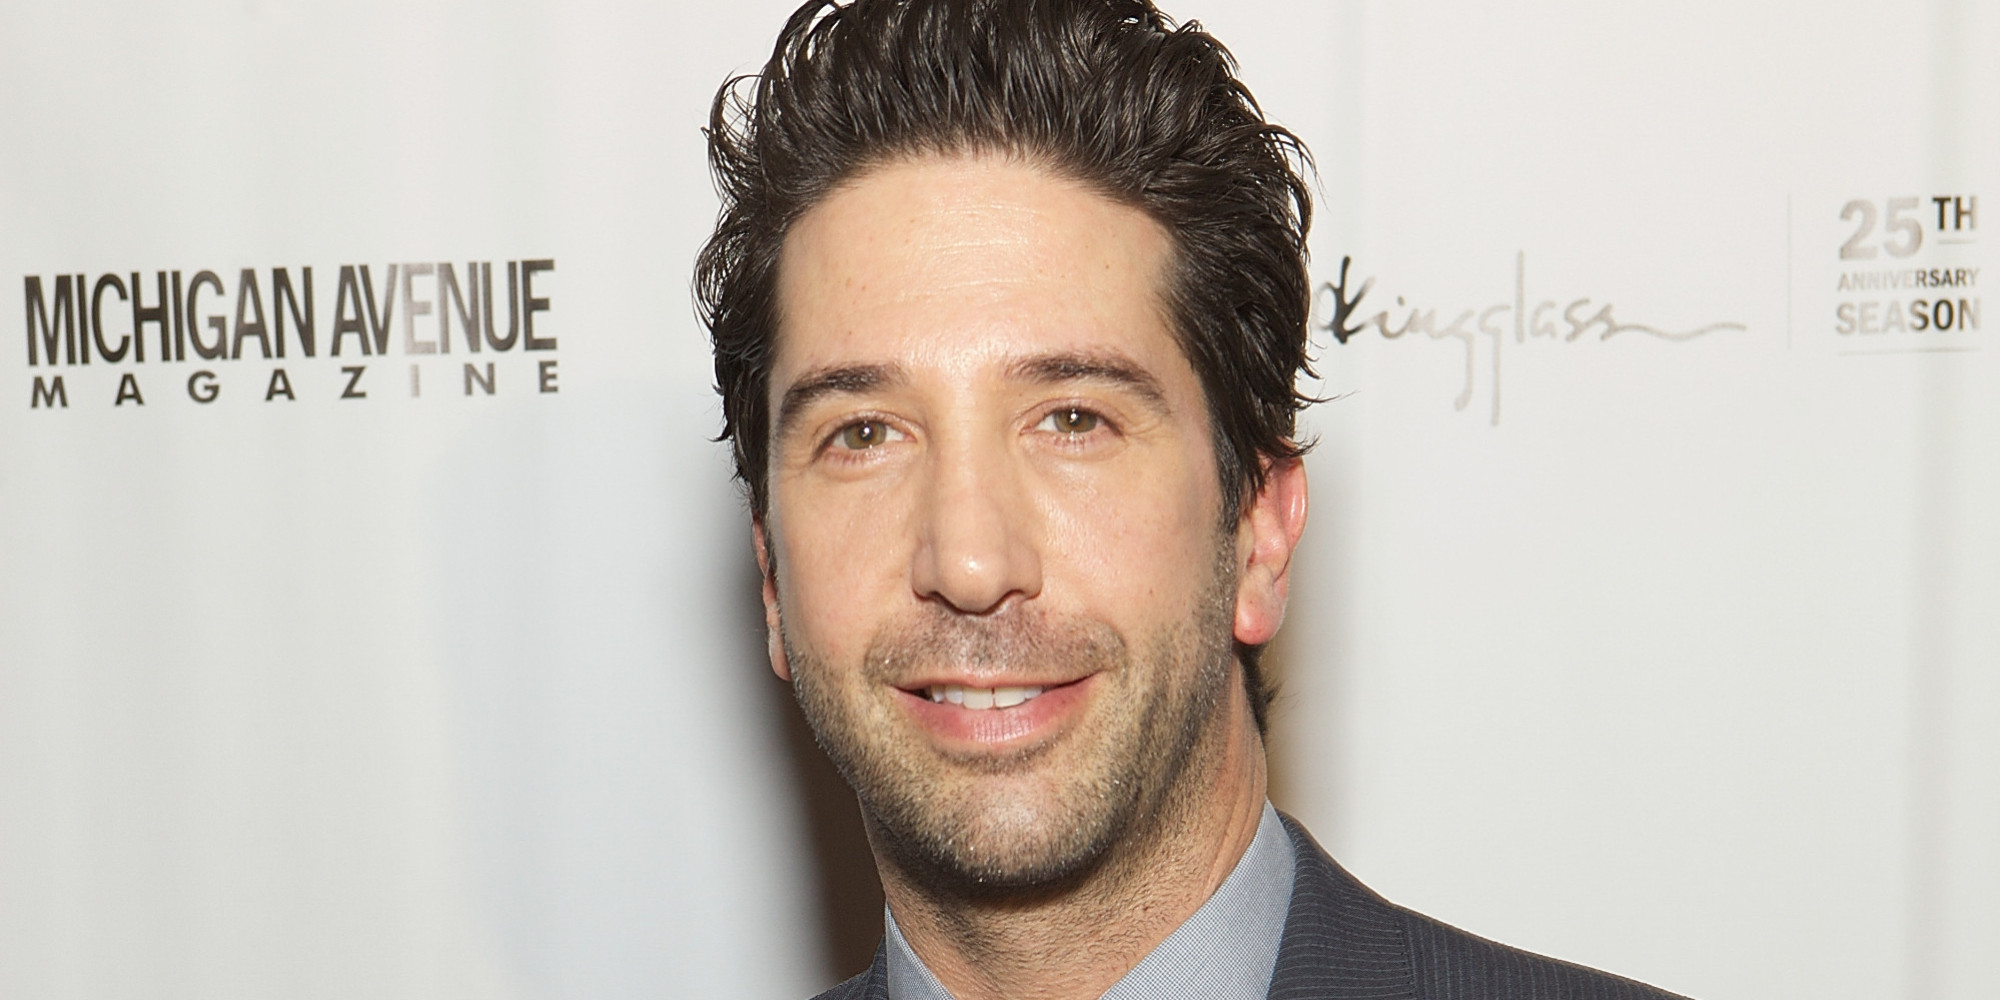 Michigan Avenue Magazine Celebrates Cover Star David Schwimmer With Russian Standard Vodka At The Dec Rooftop Lounge + Bar